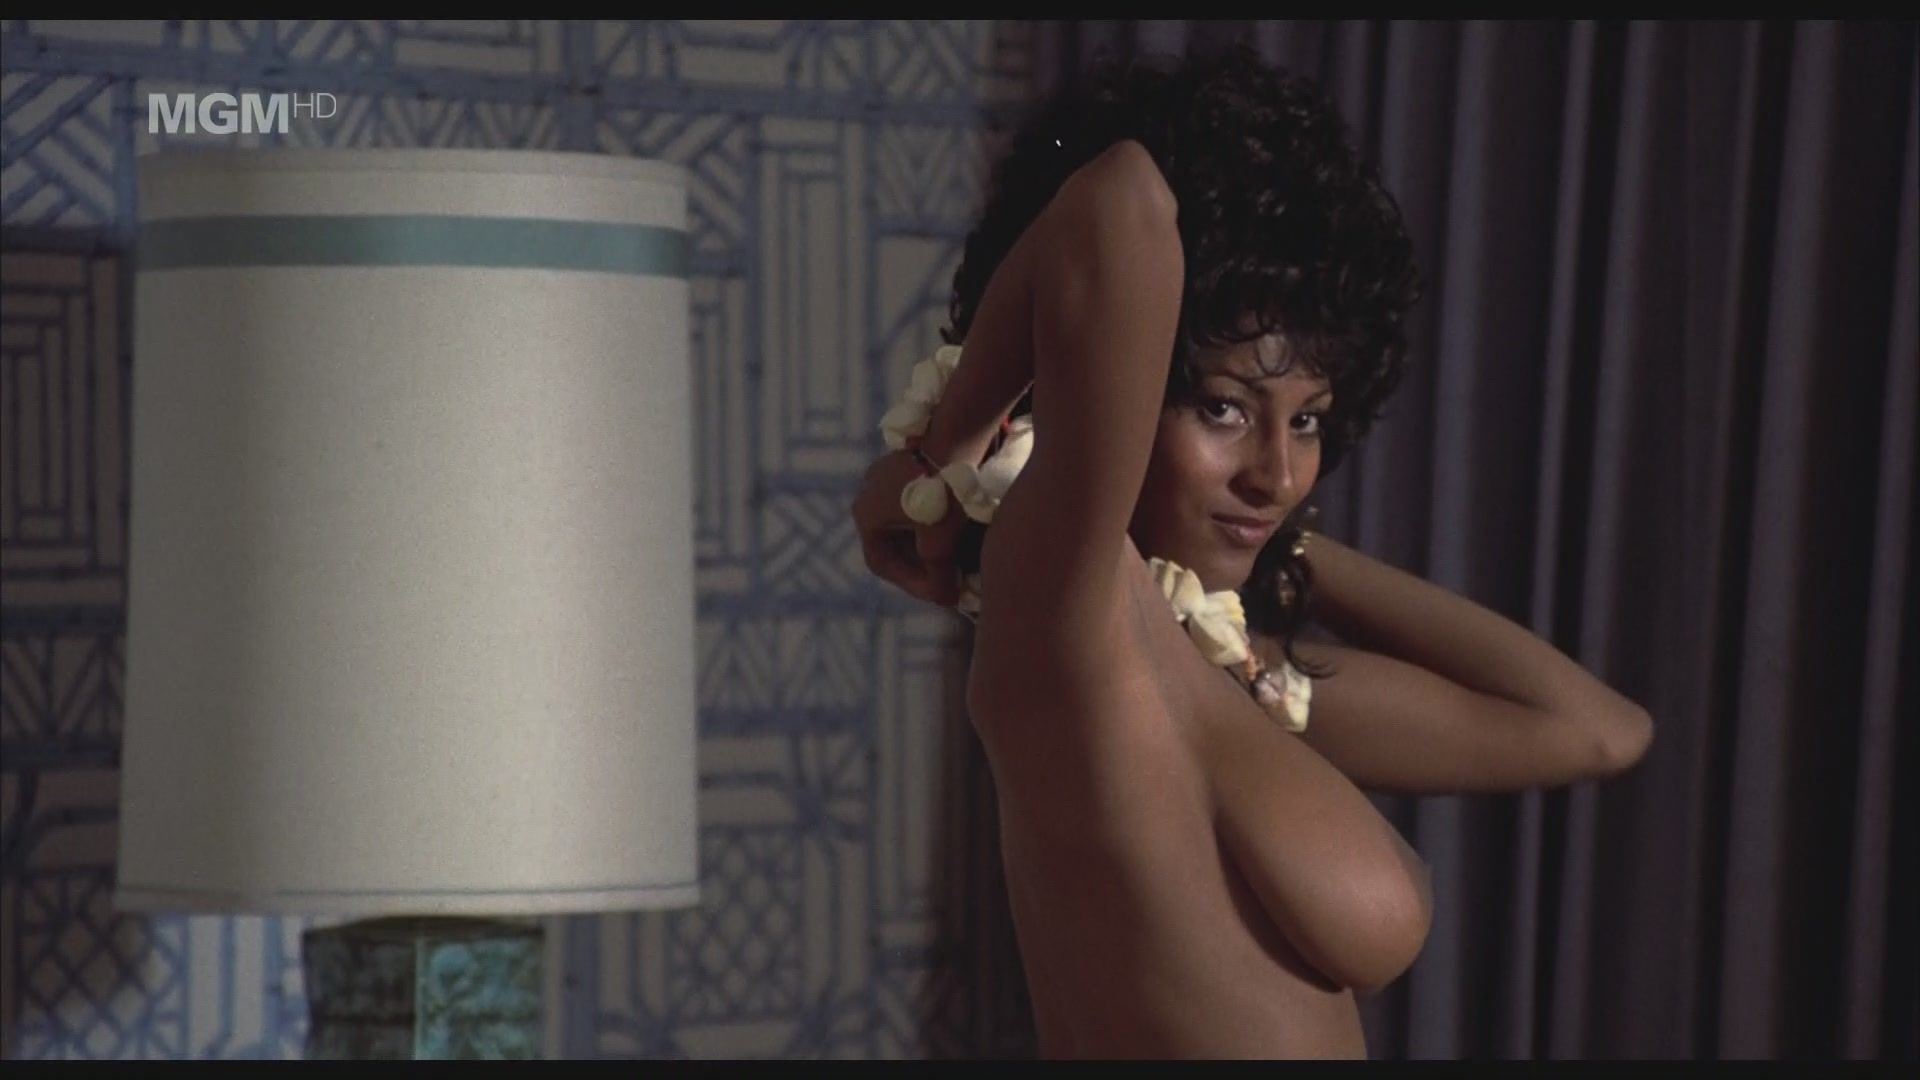 pam-grier videos - XVIDEOSCOM